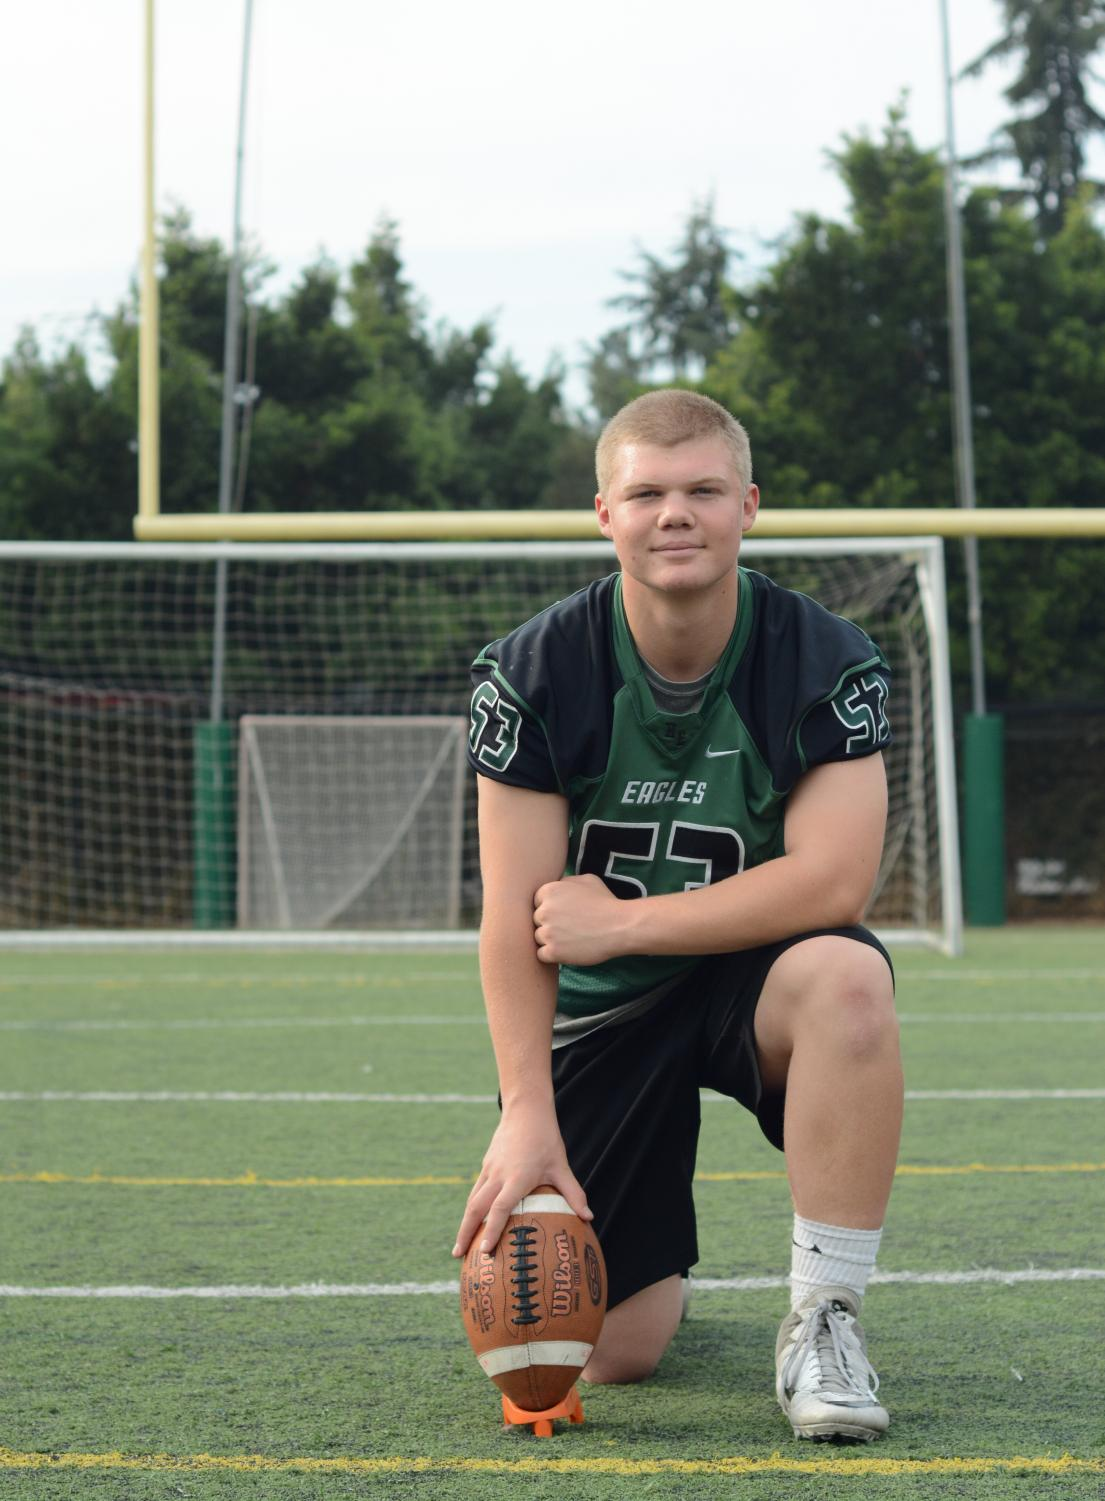 """""""Even though the kicker doesn't get much respect, every team needs a kicker,"""" Dominic Cea (12) said. """"You can be a hero or a villain. I thrive on the pressure—I like to be in the crunch time situations. It gives me a rush of adrenaline, and I like to try to be the hero. Everyone has their role to play, whether it's on the football field or in the workplace. I think wherever you go, there are always going to be roles that are bigger and everyone cares about, but there's always going to be people in the shadows doing a lot of work that people don't see."""""""